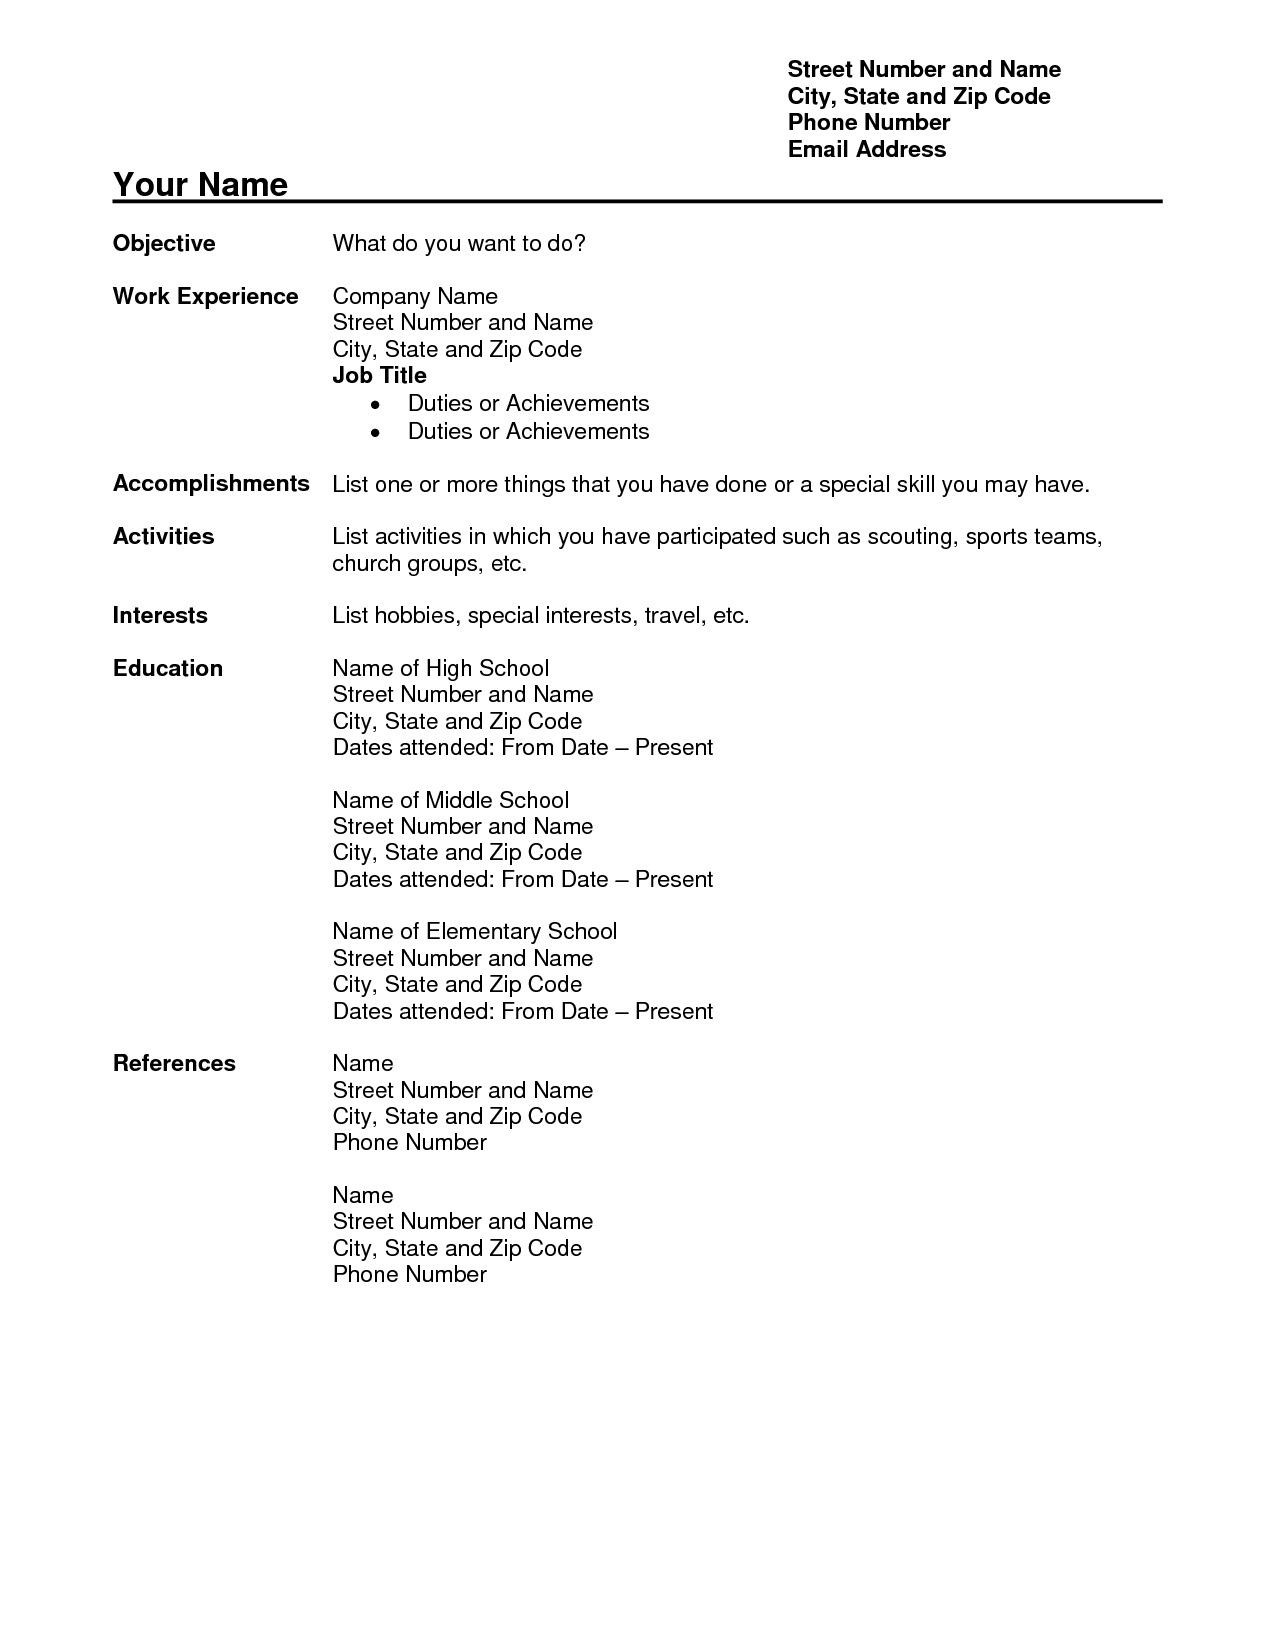 Resume Template Downloads Free Teacher Resume Templates Download Free Teacher Resume